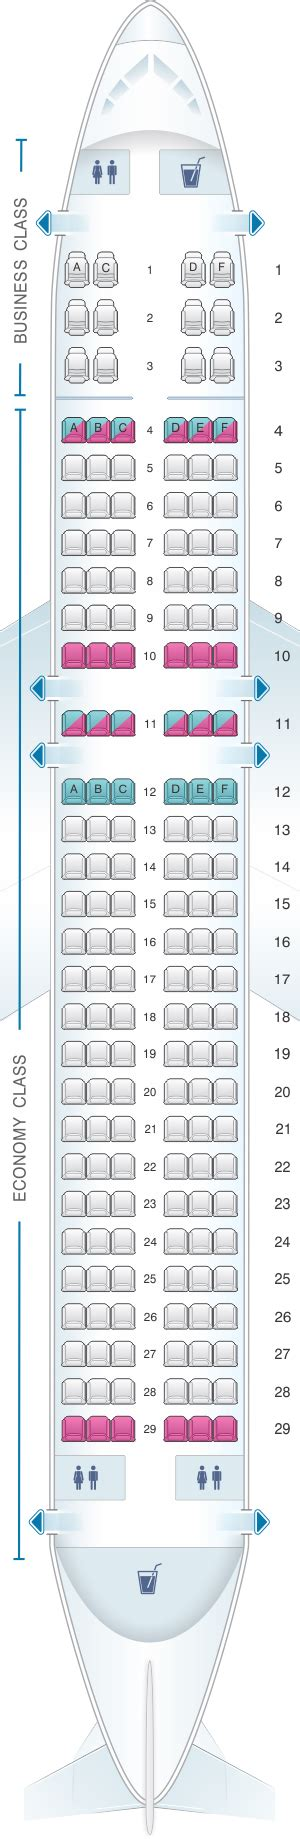 siege business air seat map brussels airlines airbus a320 seatmaestro